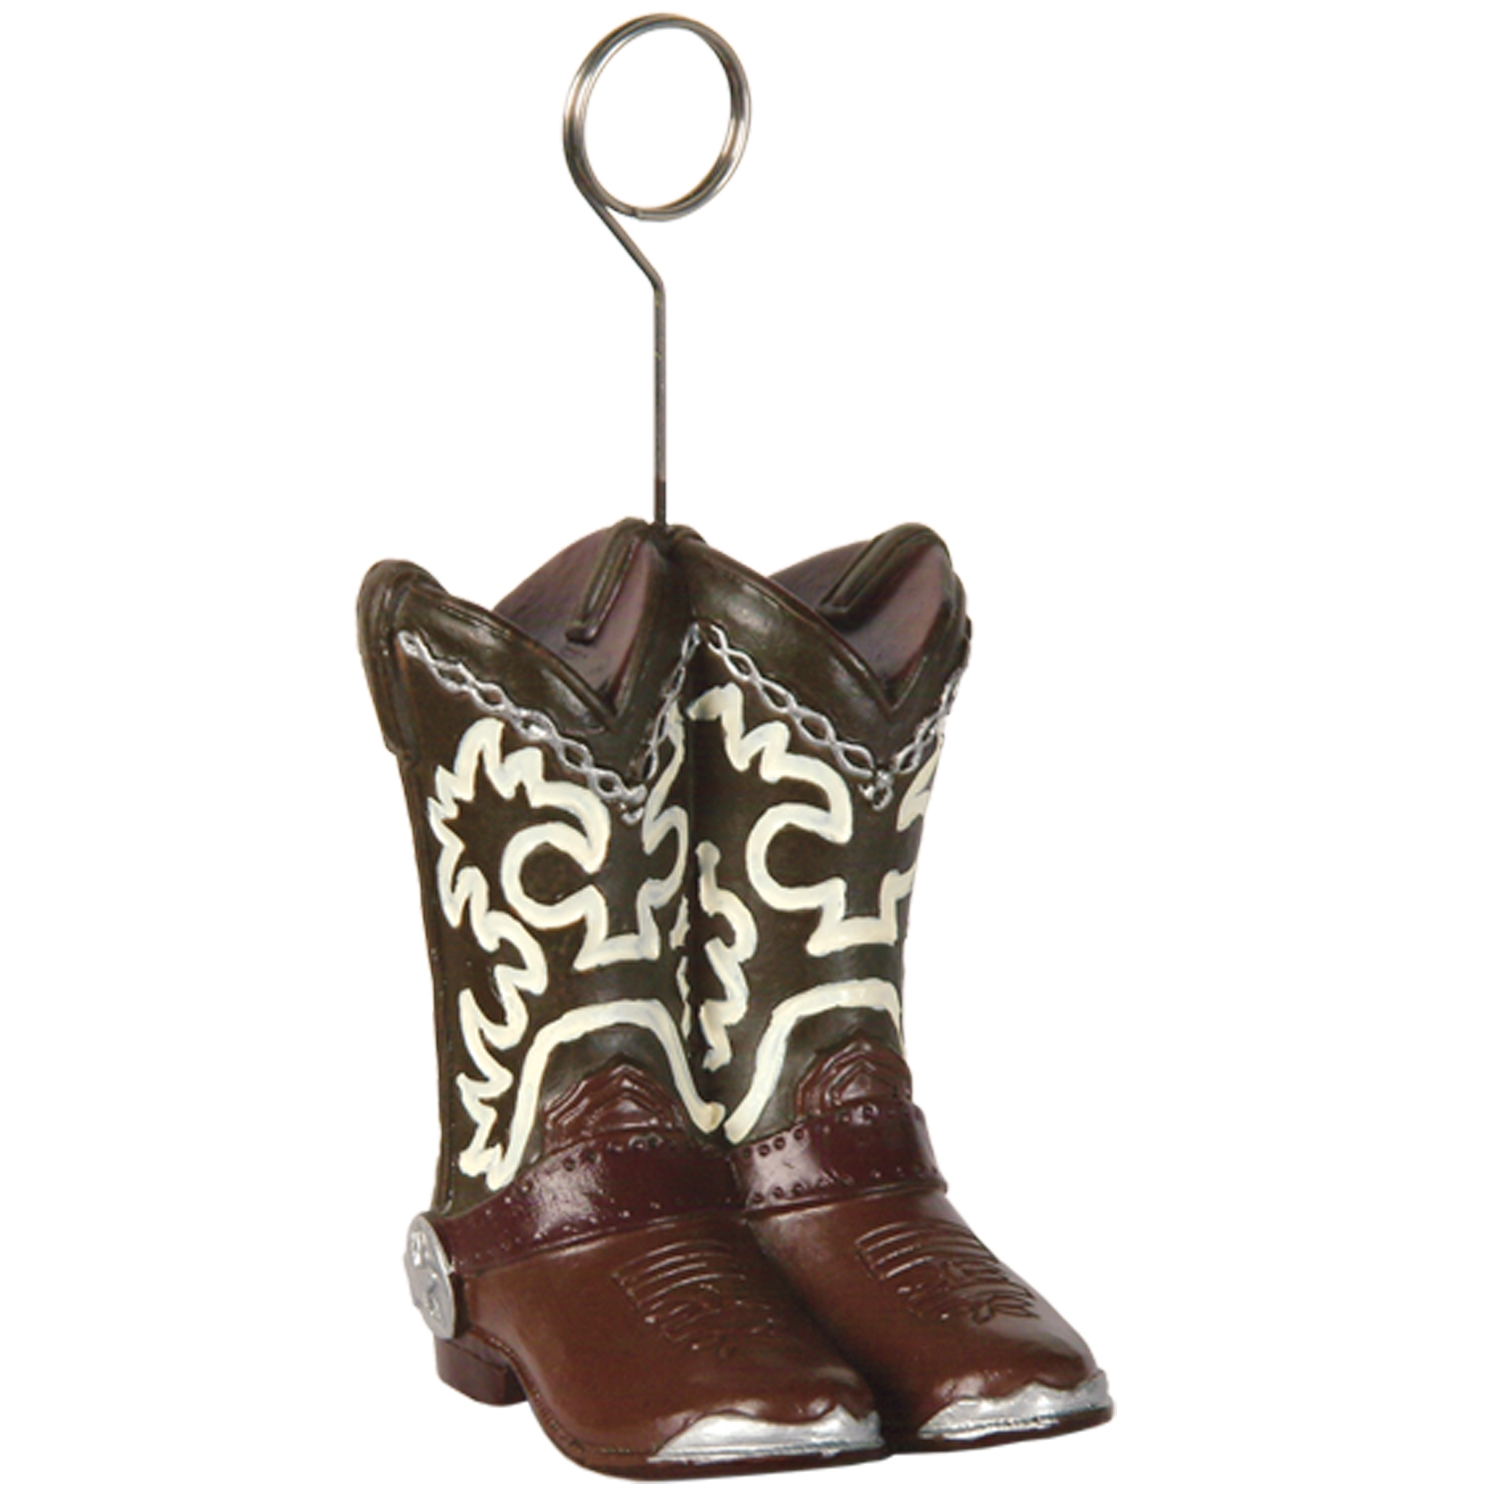 6oz Cowboy Boots Photo/Balloon Holder (Pack of 6) cowboy, boots, photo, balloon, holder, western, theme, party, pack, rodeo, event, celebration, hotel, restaurant, bar, casino